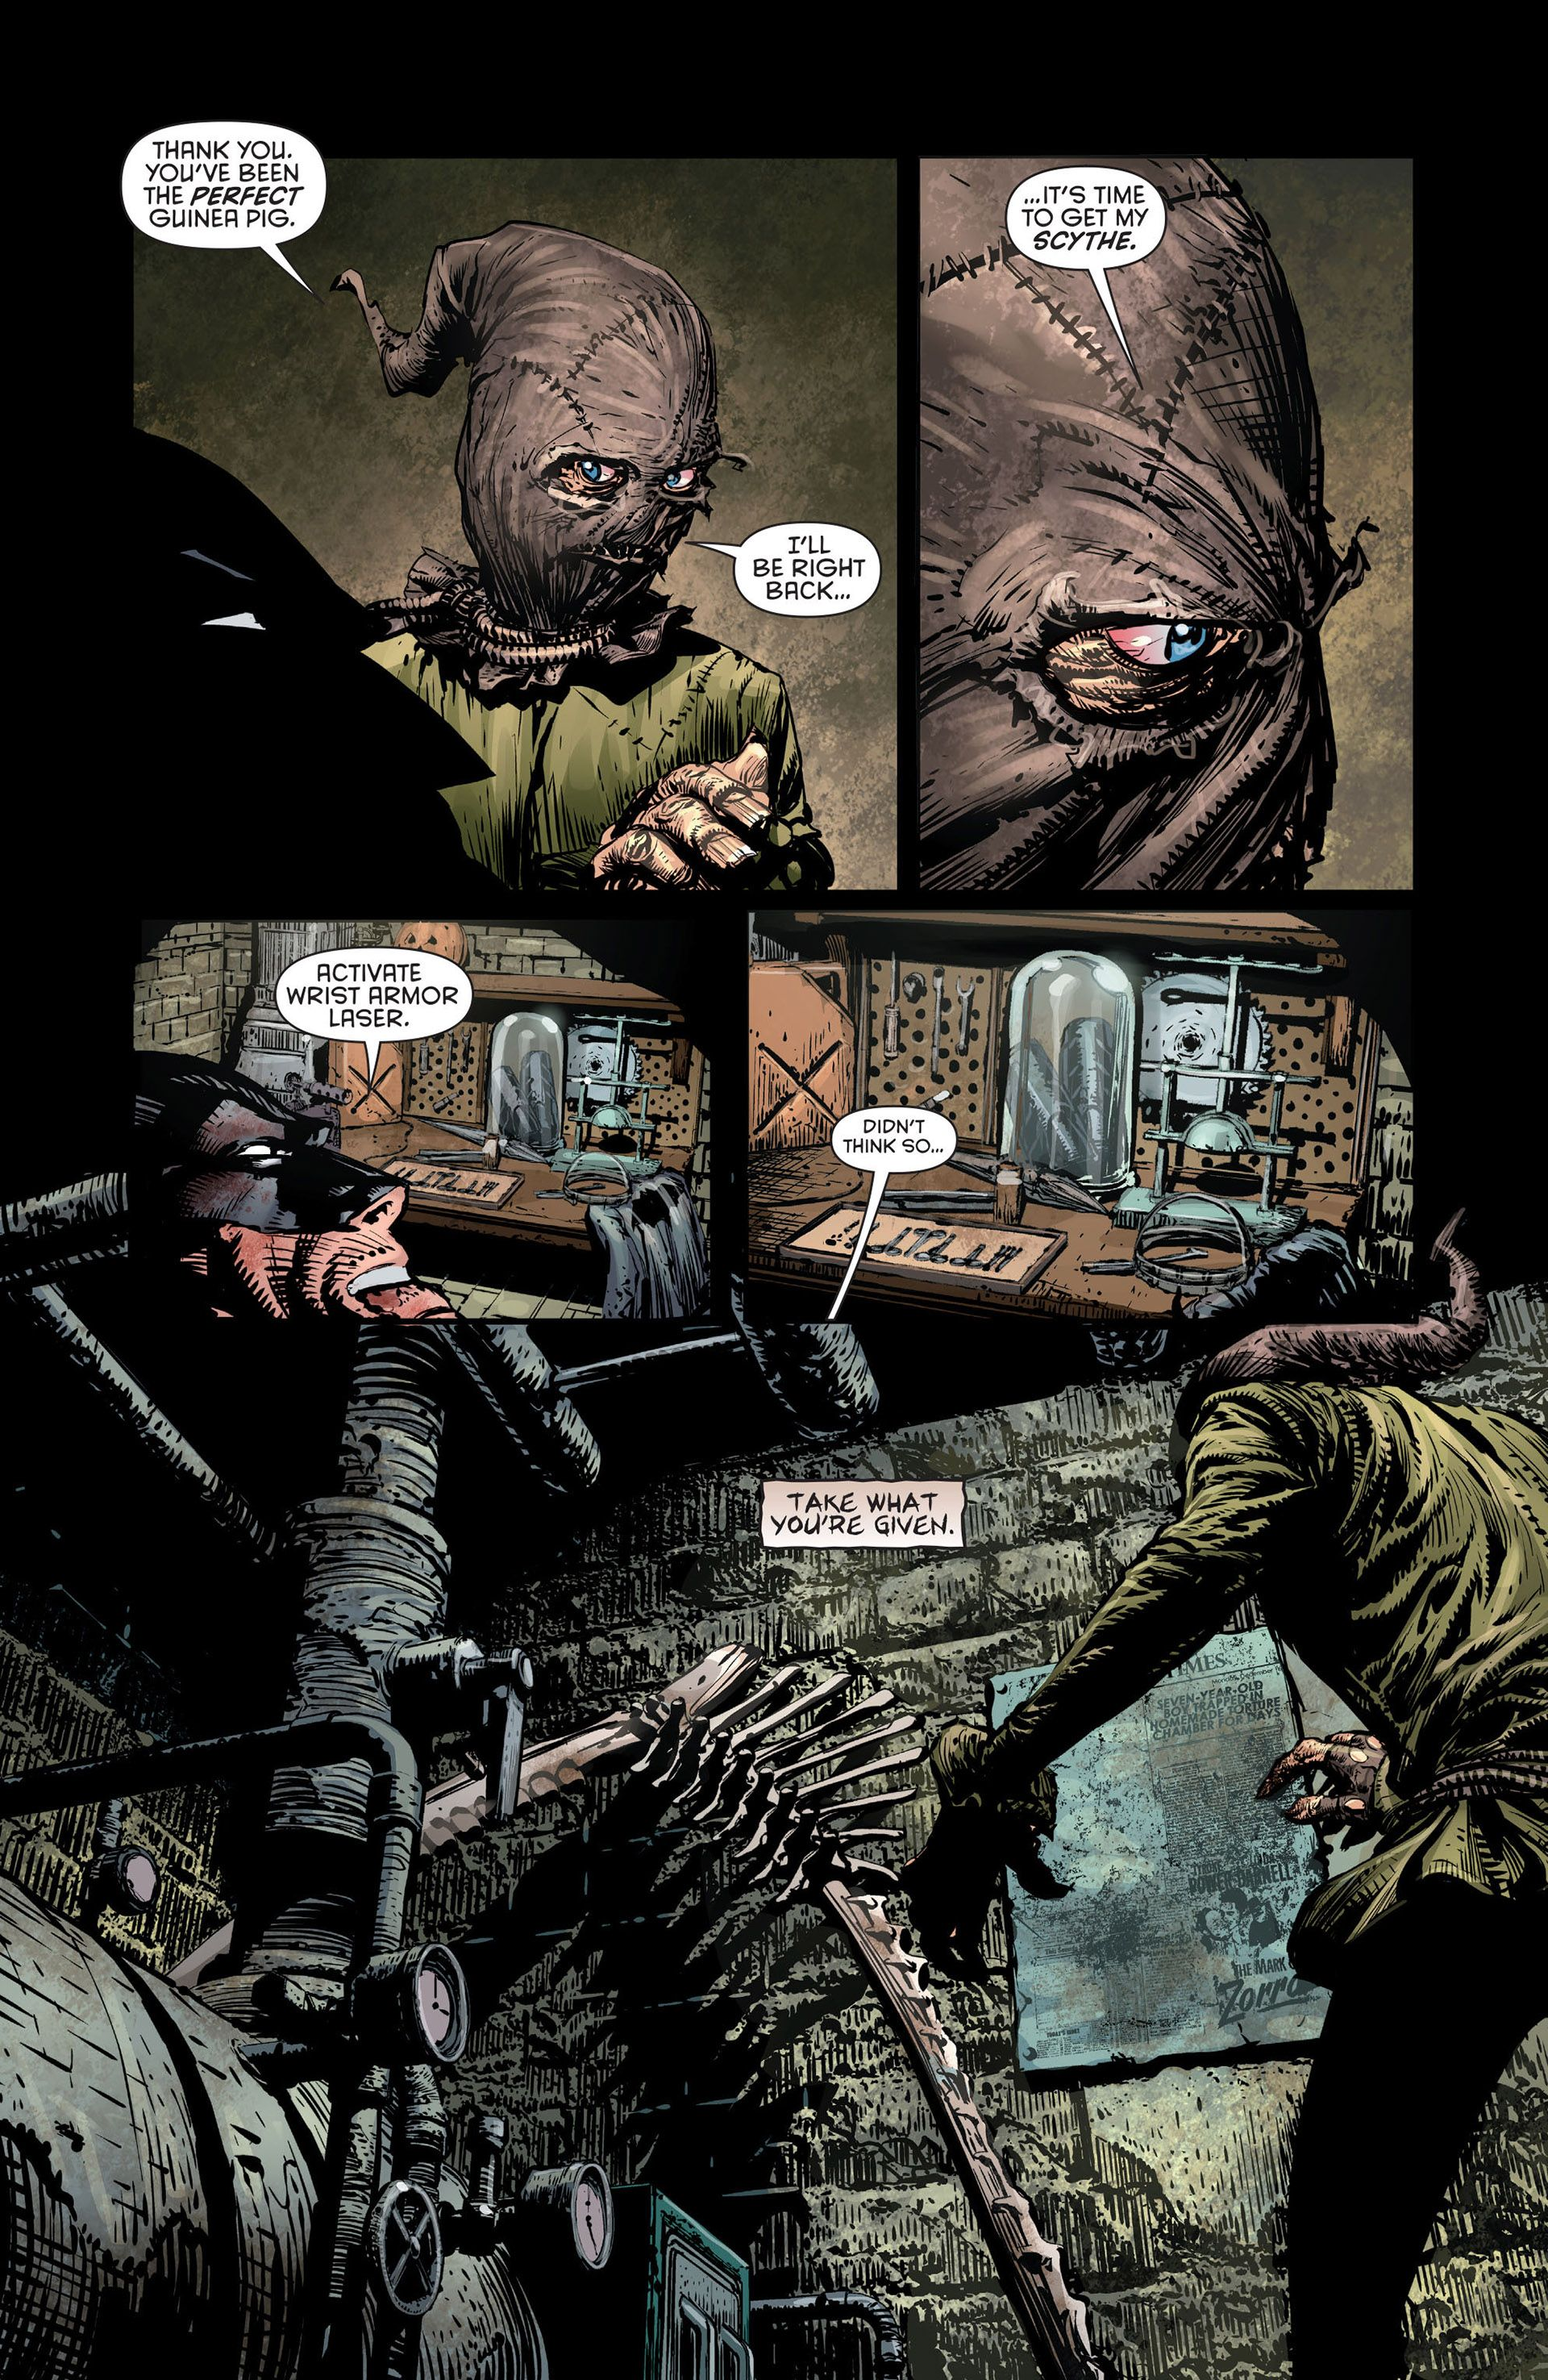 Pin by Sam Rodriguez on Scarecrow's | Scarecrow dc, David finch